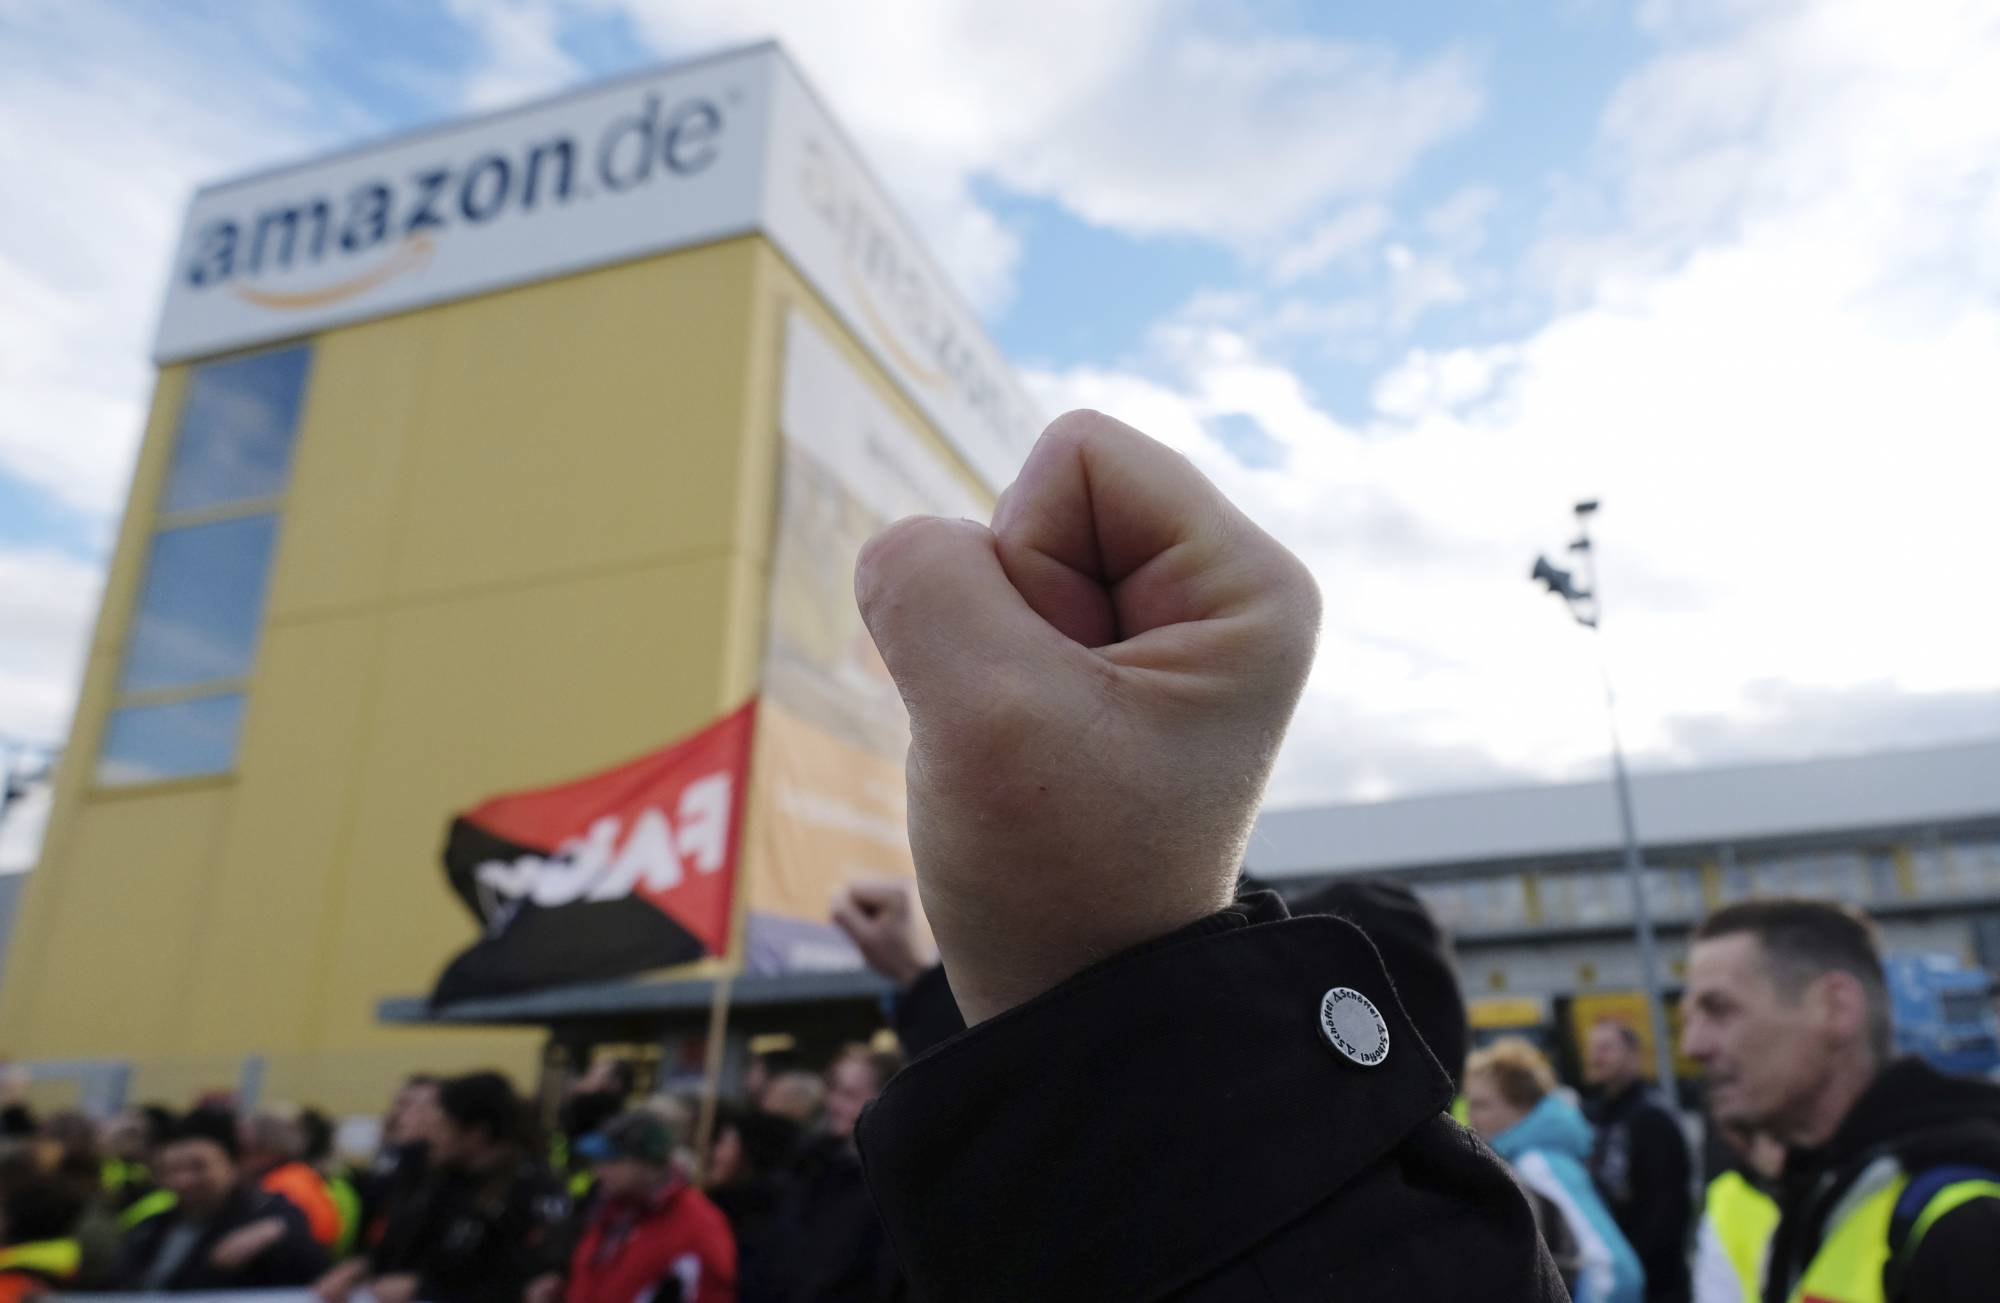 Blackfriday Germany Amazon Workers In Germany Italy Stage Black Friday Strike Wtop